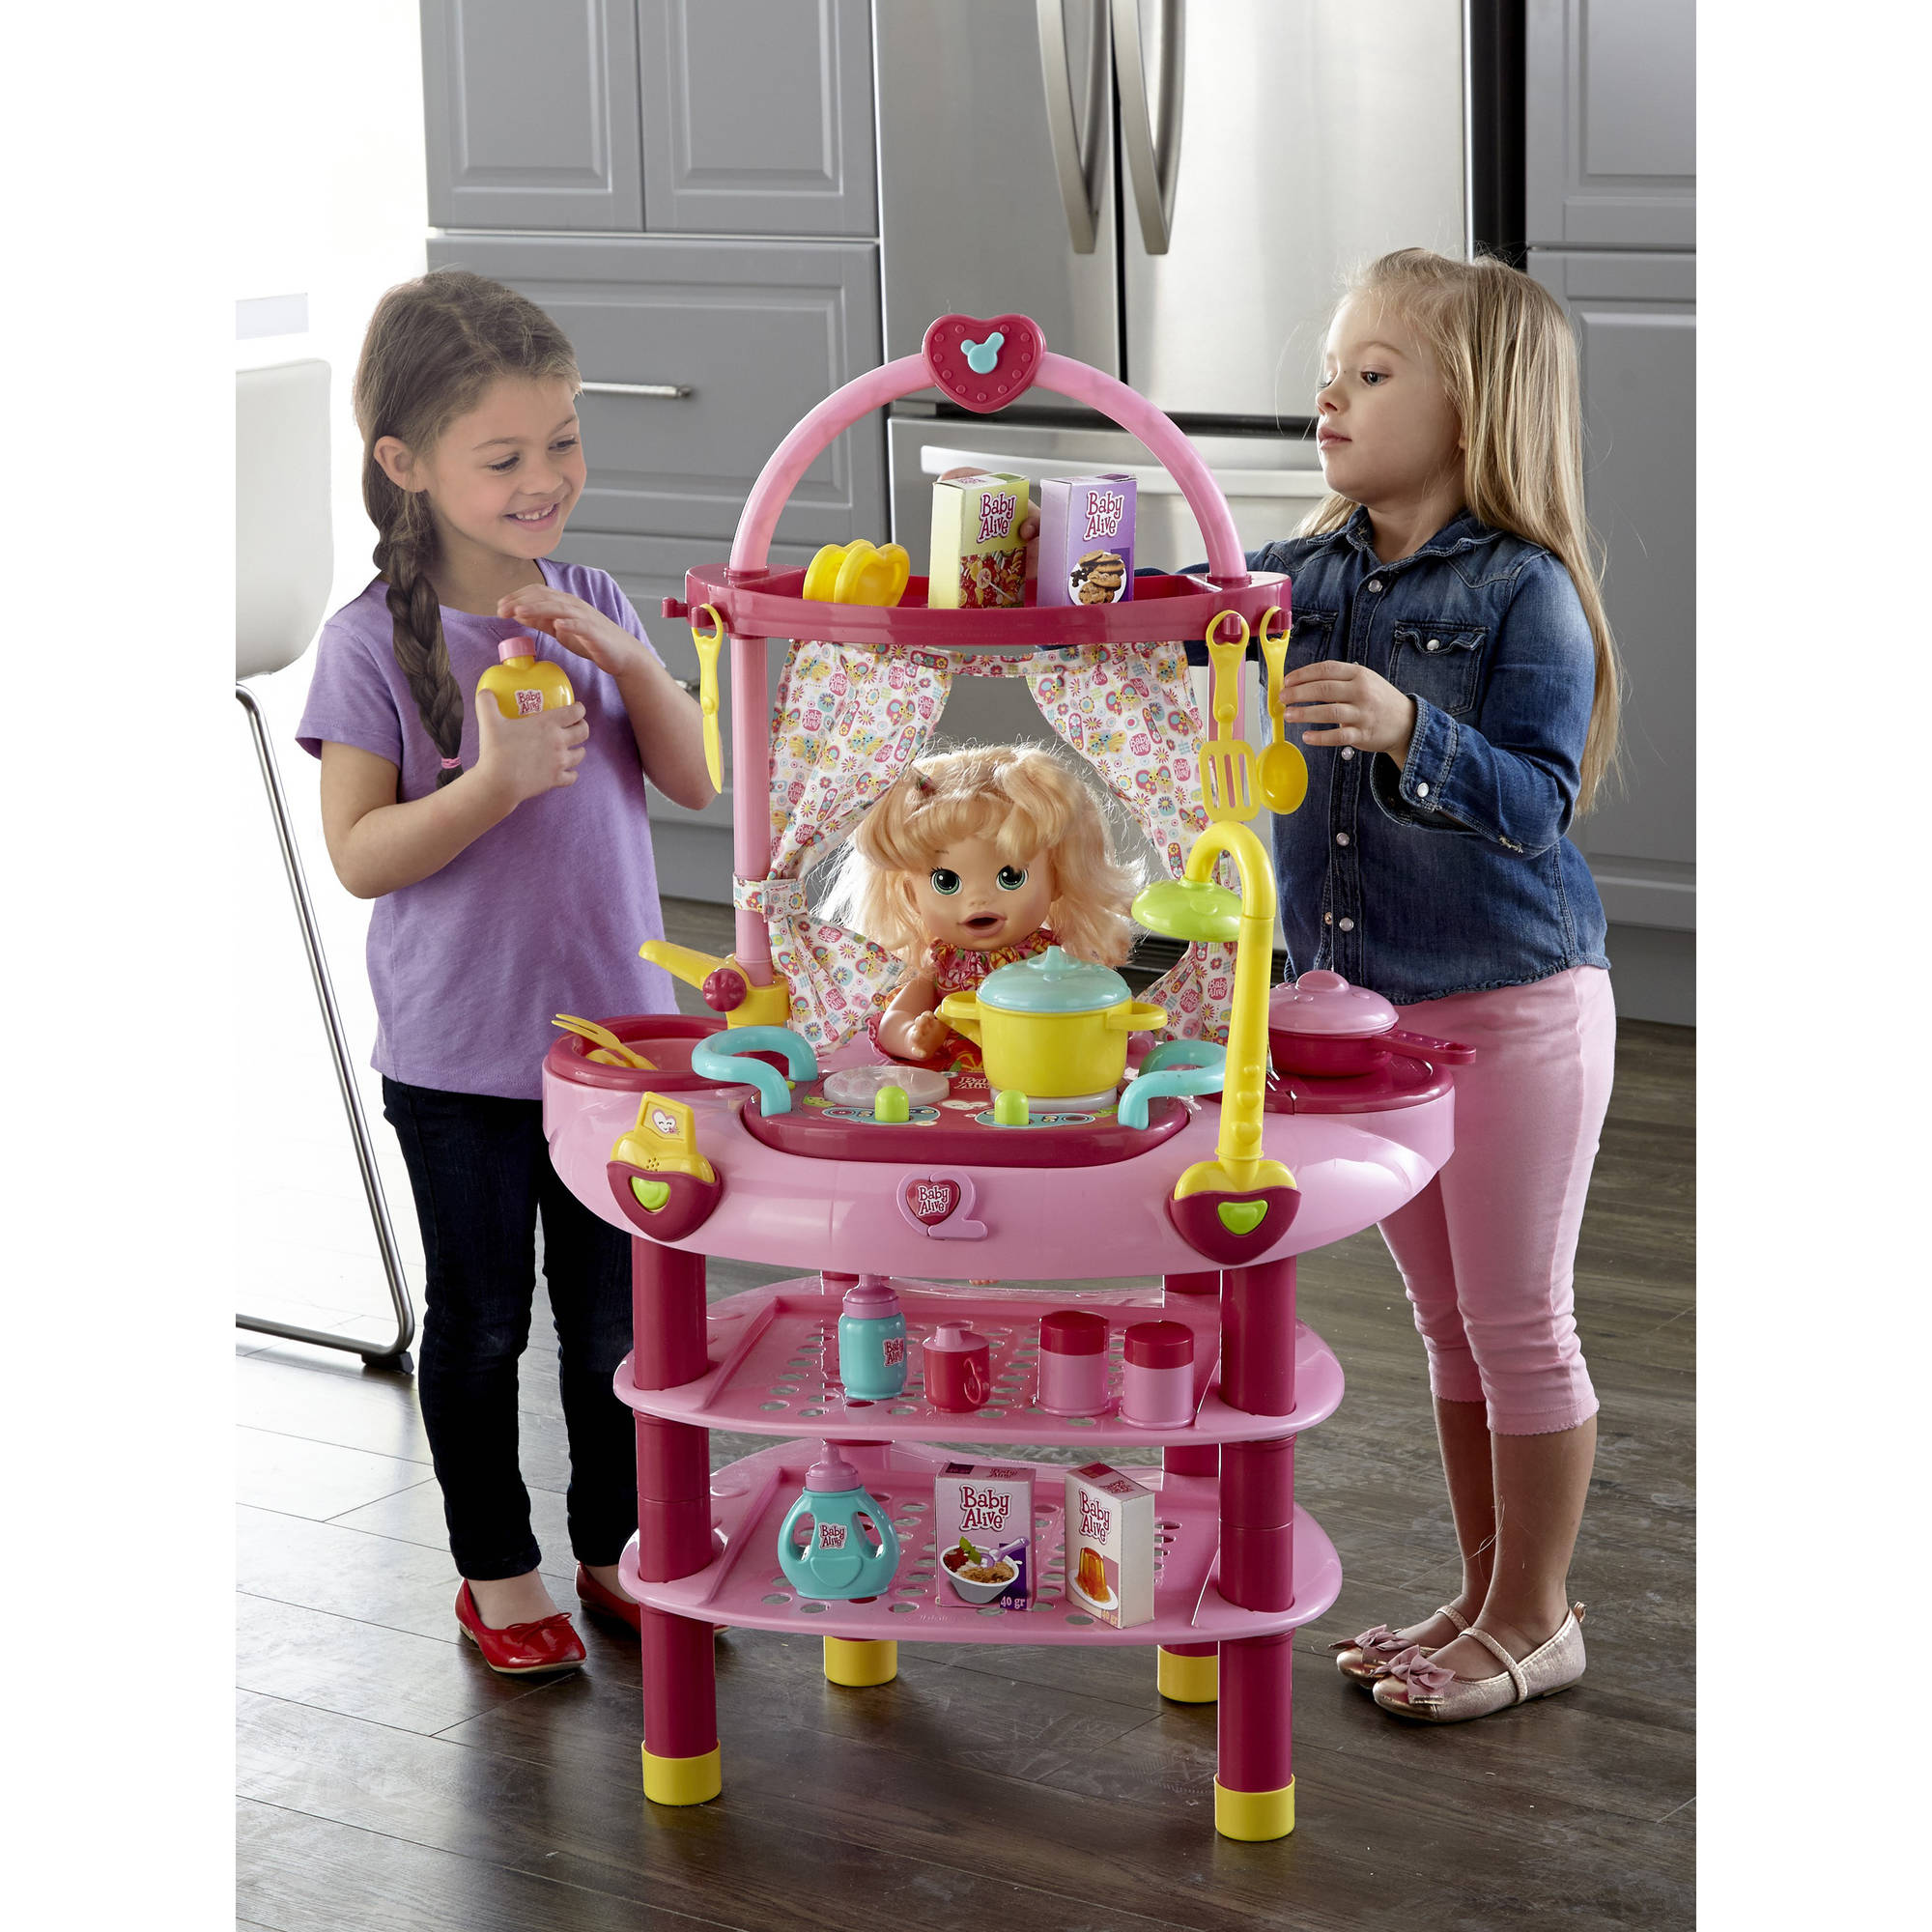 Baby alive doll 3 in 1 cook 39 n care kitchen set for Kitchen set for babies